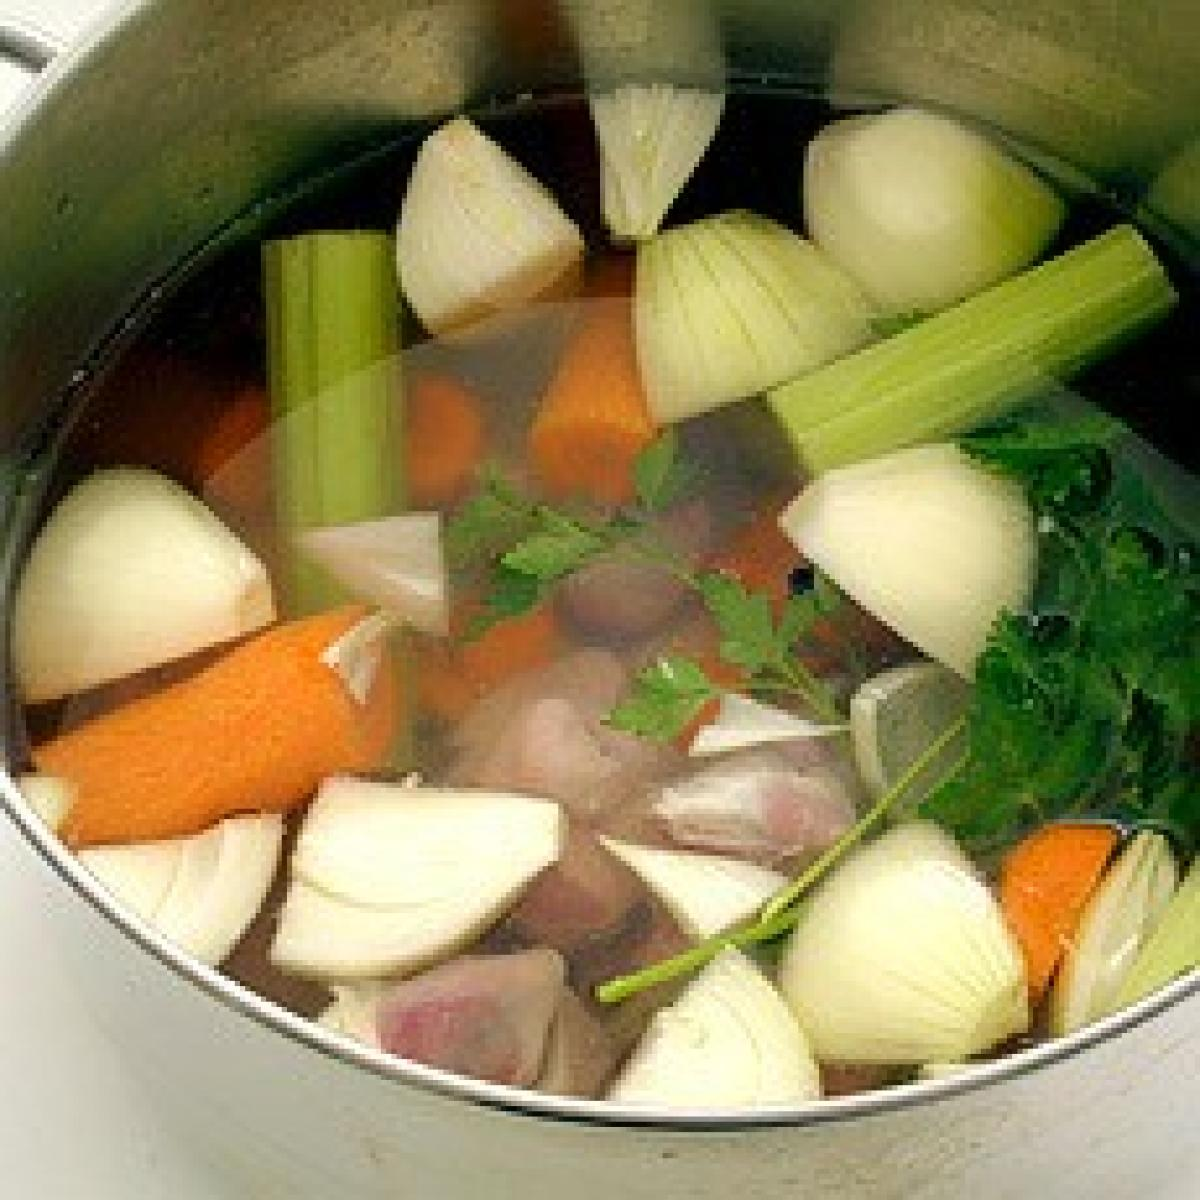 A picture of Delia's Turkey Giblet Stock recipe